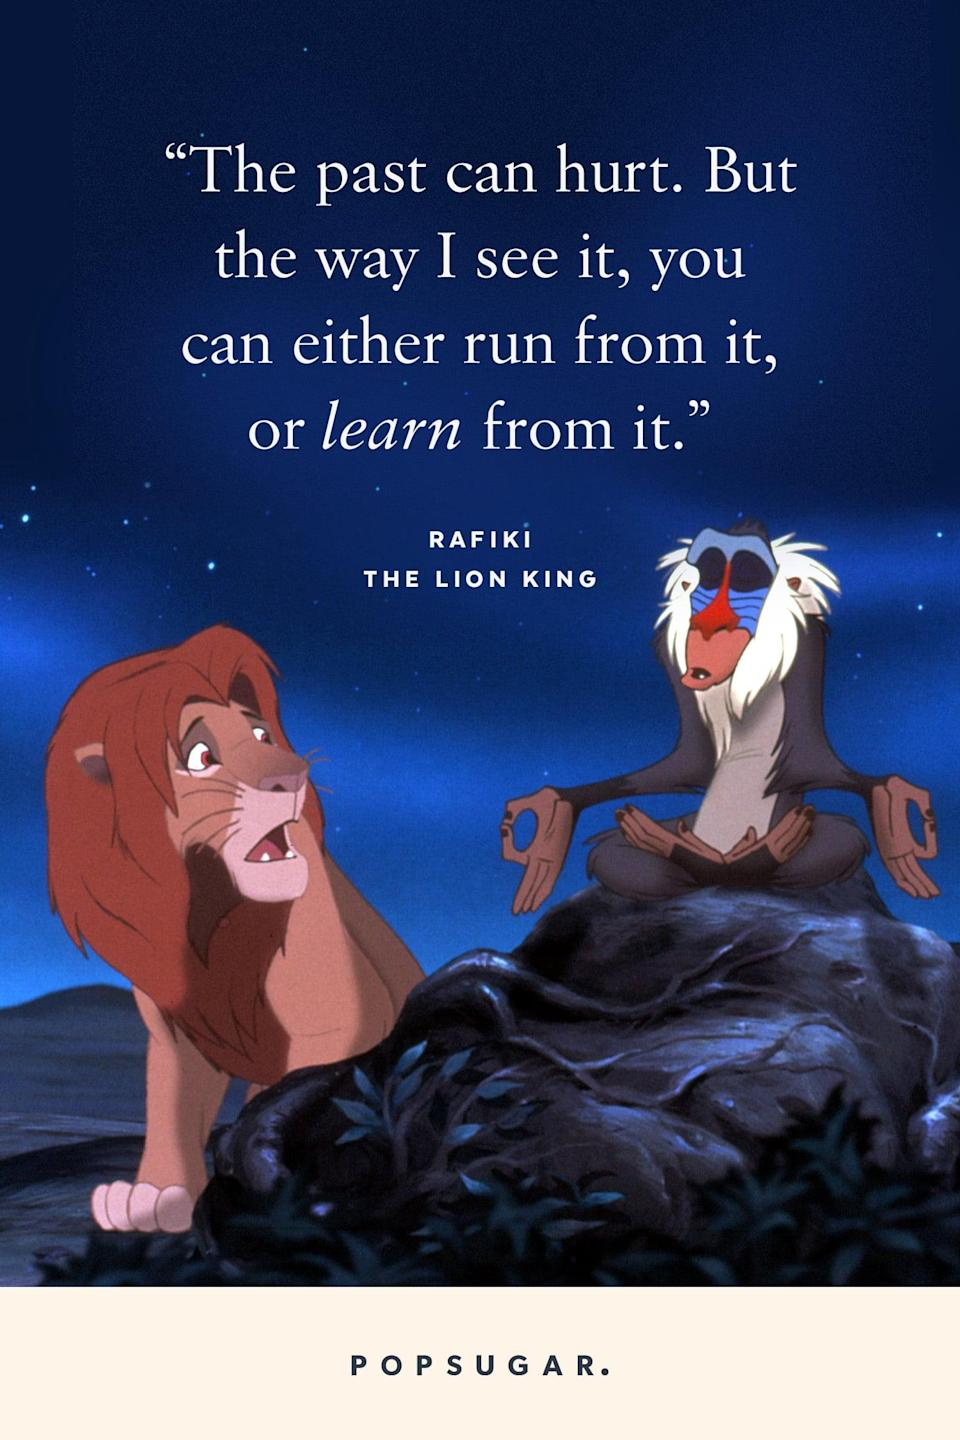 "<p>""The past can hurt. But the way I see it, you can either run from it, or learn from it."" - Rafiki, <b>The Lion King</b></p>"